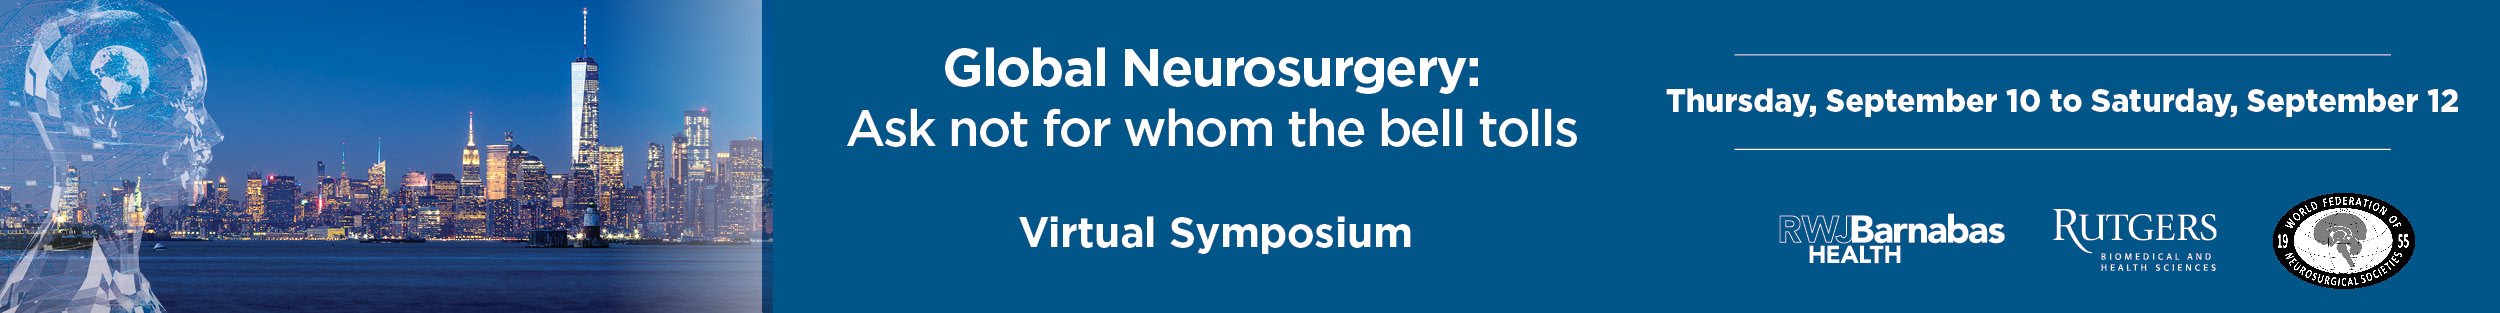 Global Neurosurgery:  Ask Not for Whom the Bell Tolls Banner